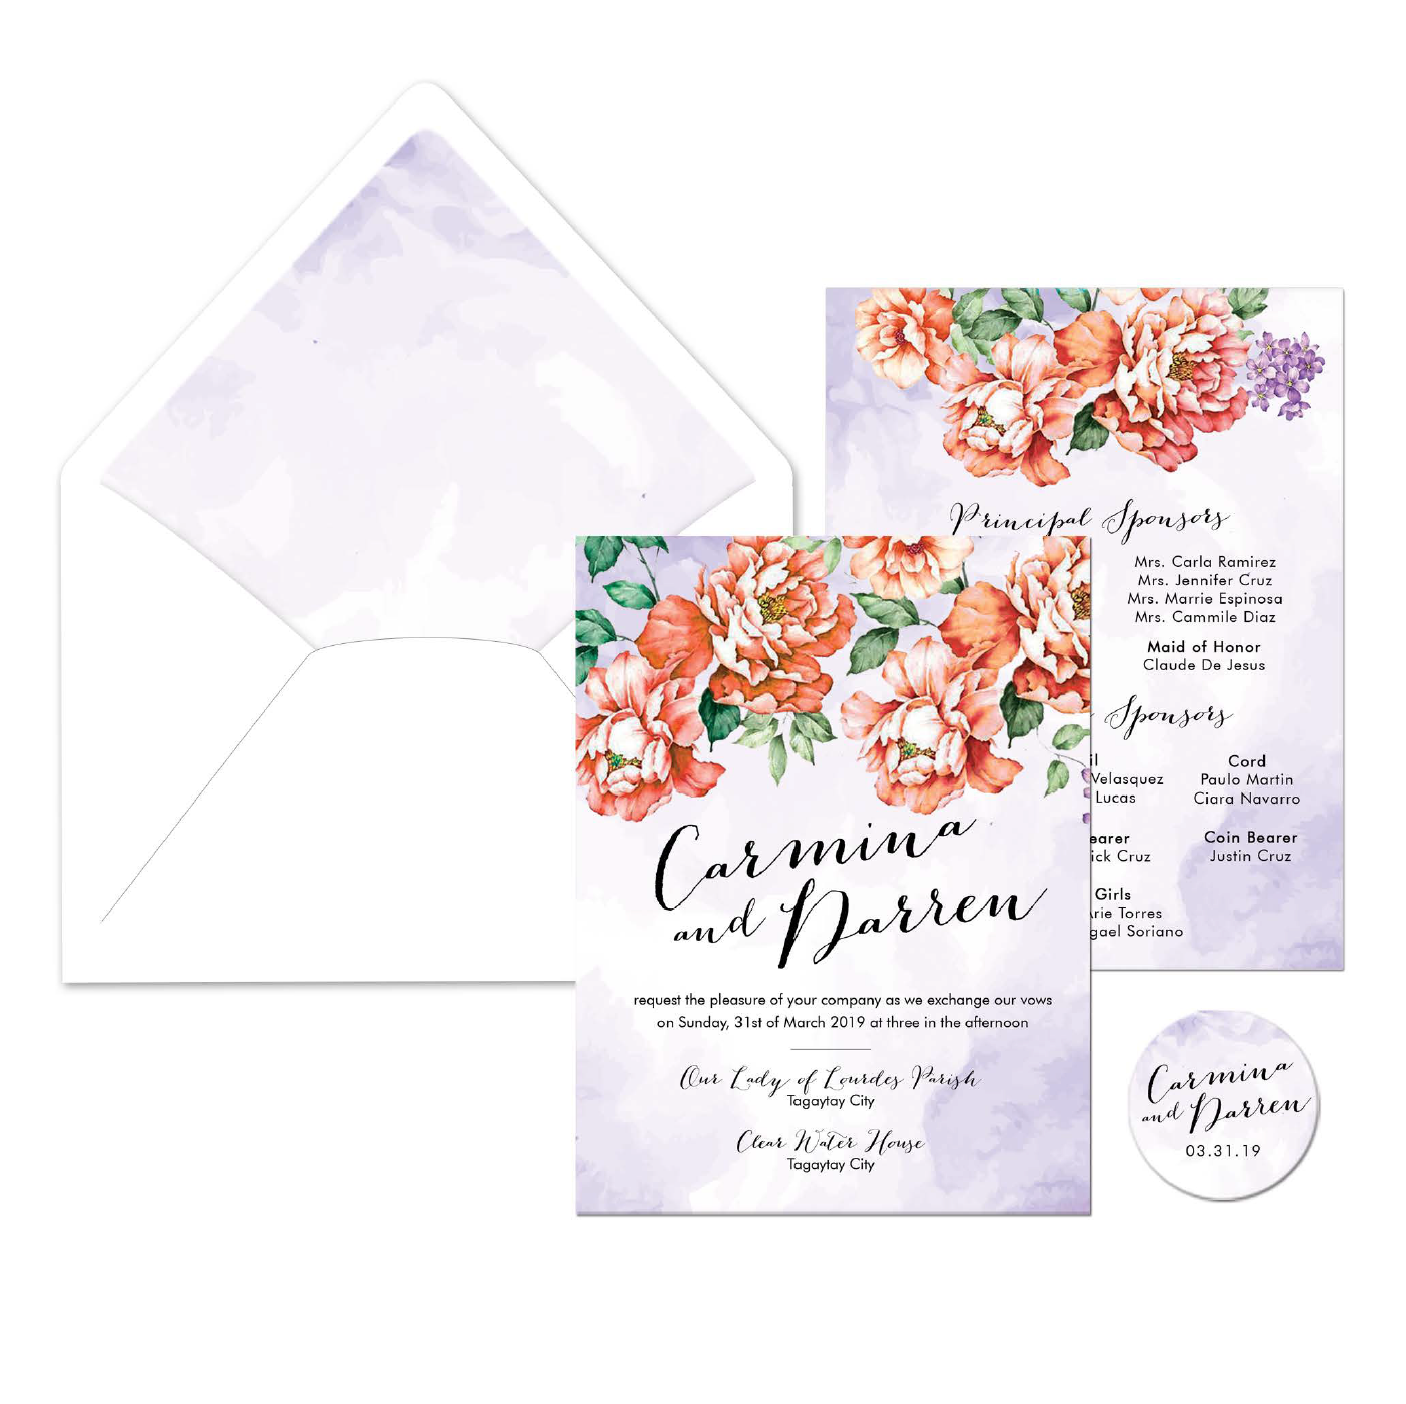 Indigo Wedding Invitation